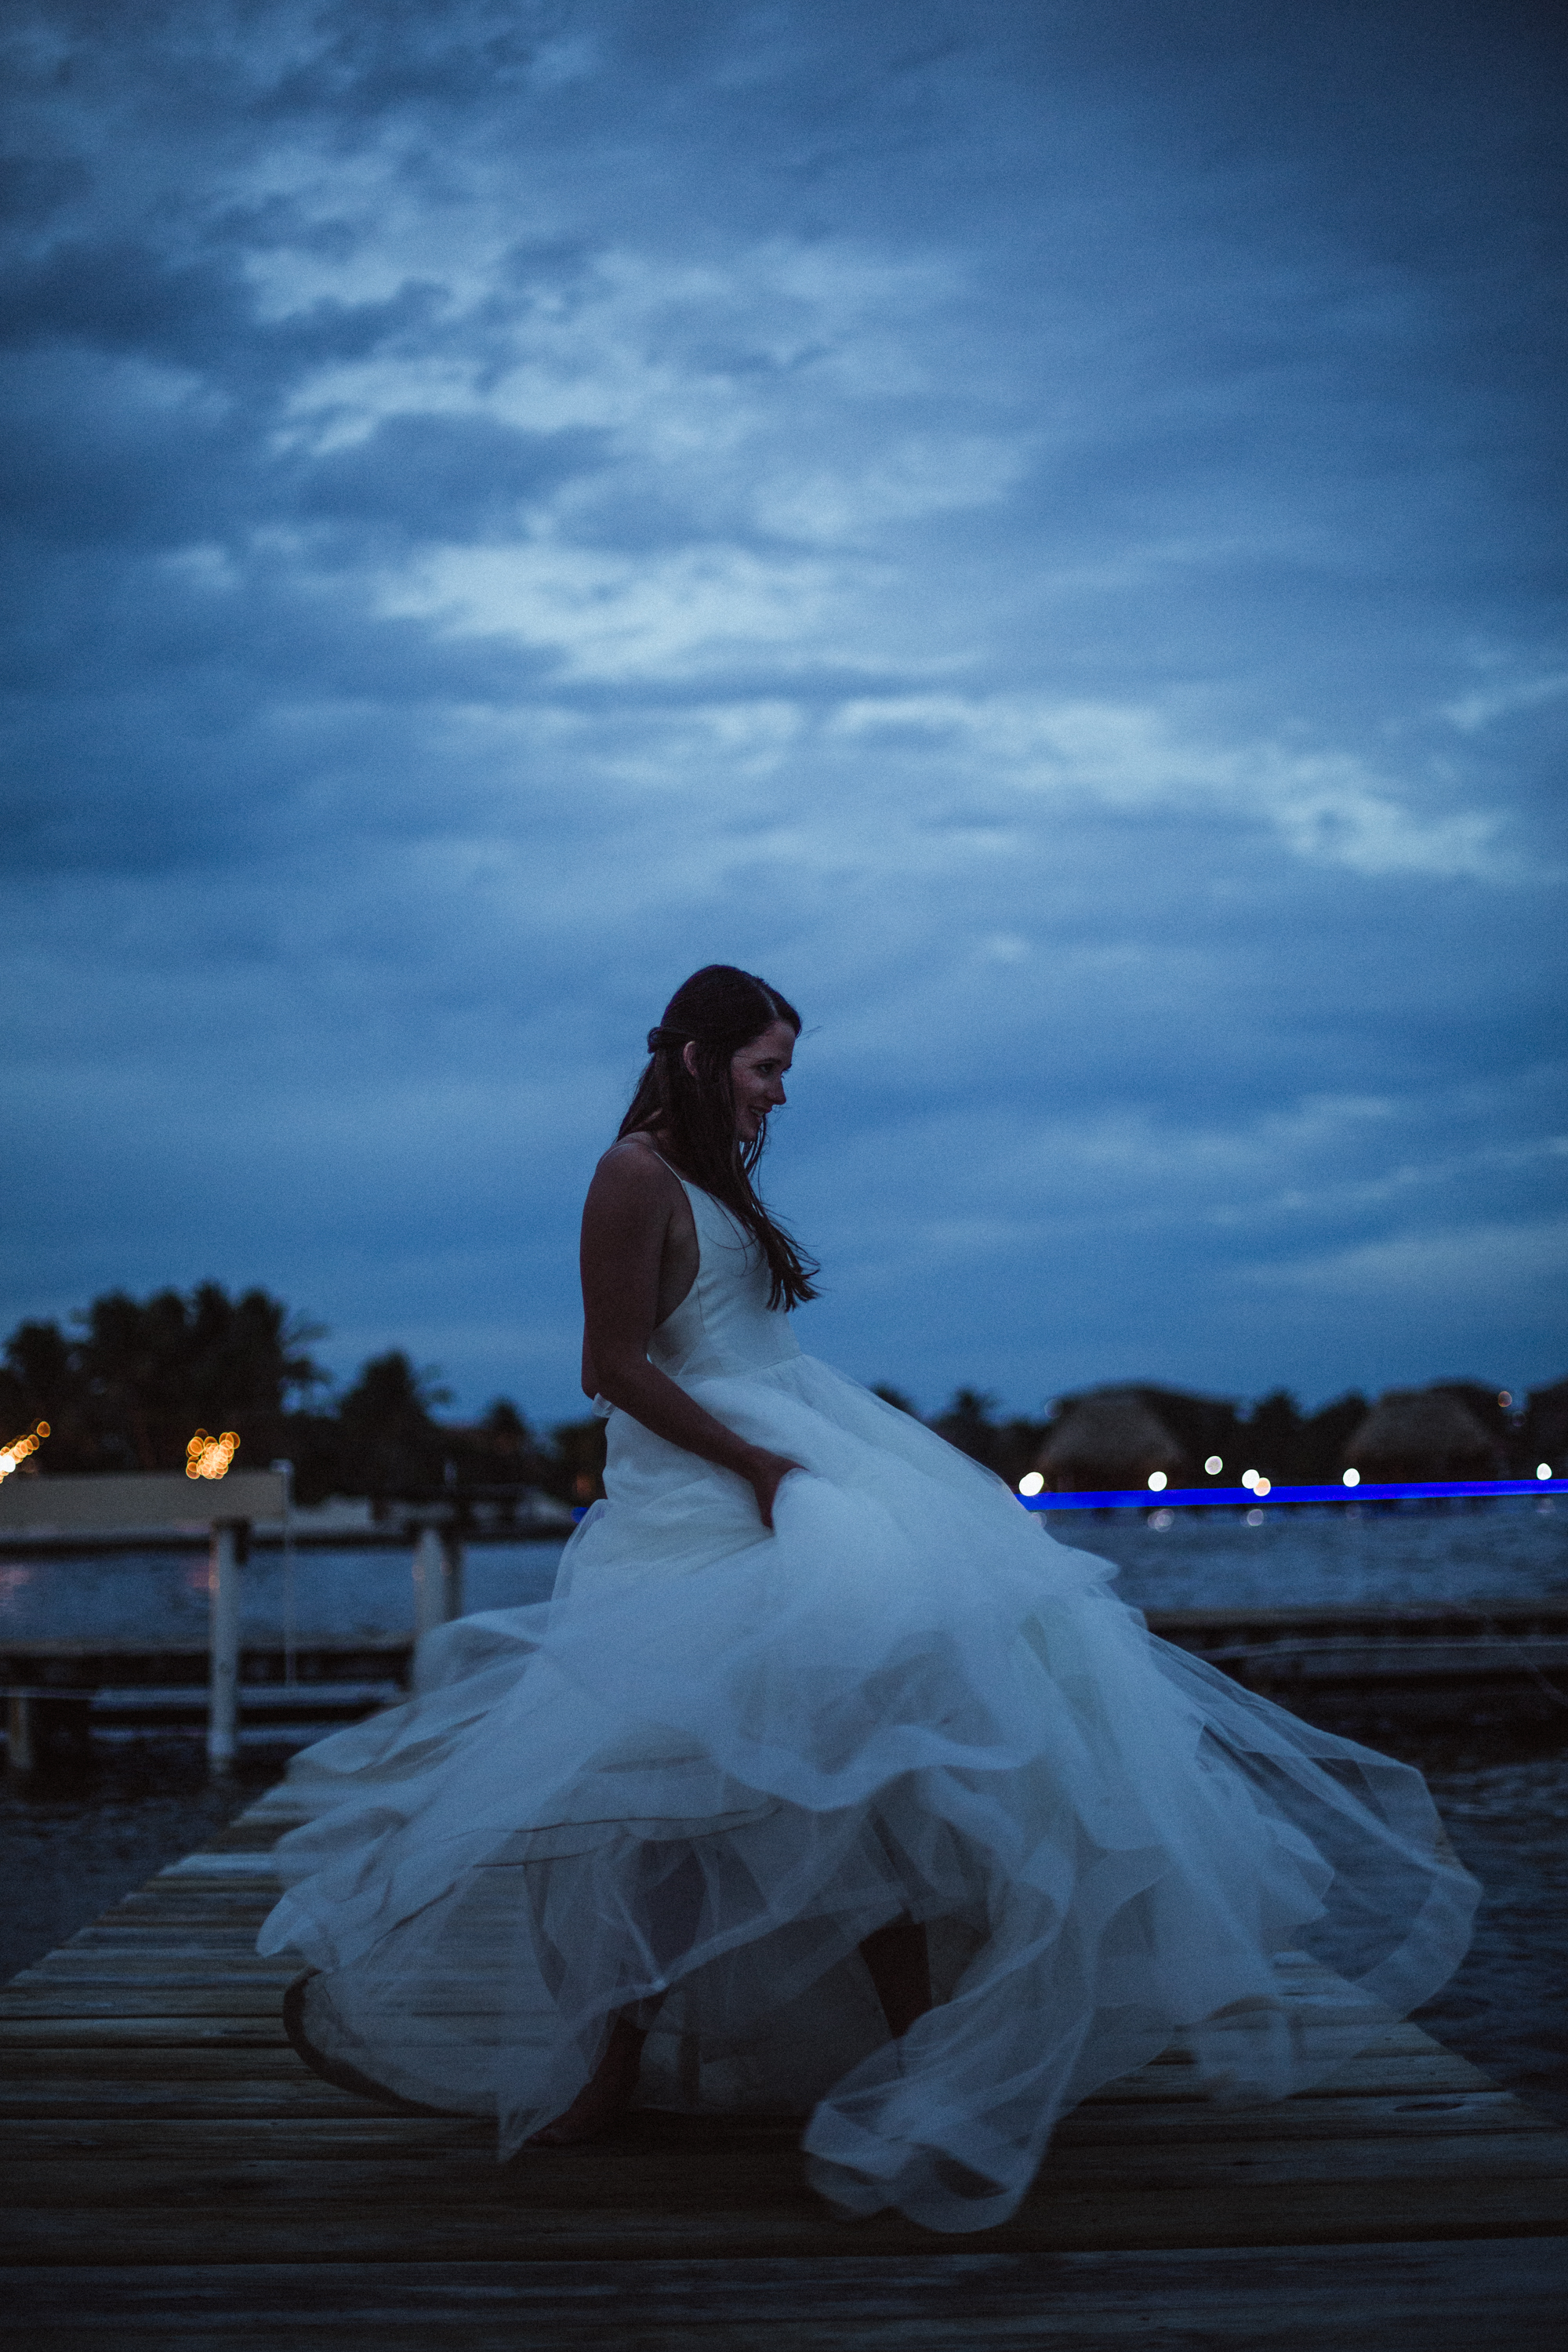 san-pescador-belize-wedding-christinemariephoto-j-k-154.jpg